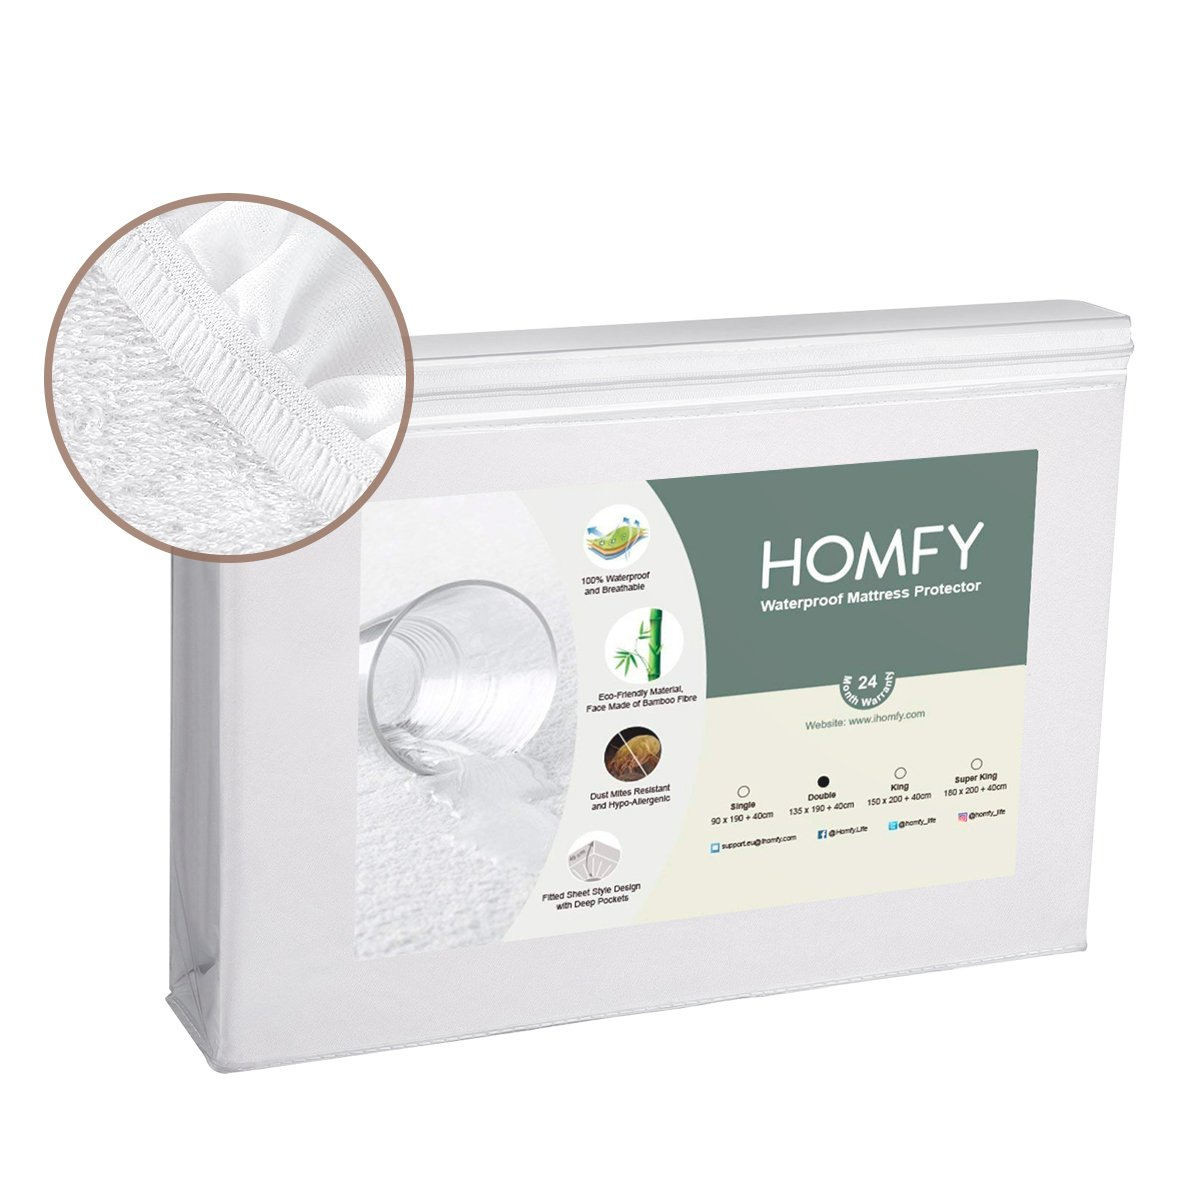 HOMFY Waterproof Mattress Protector, Single Fitted Sheet for Junior or Cot Bed, Terry Towelling and Breathable, Anti-Allergy